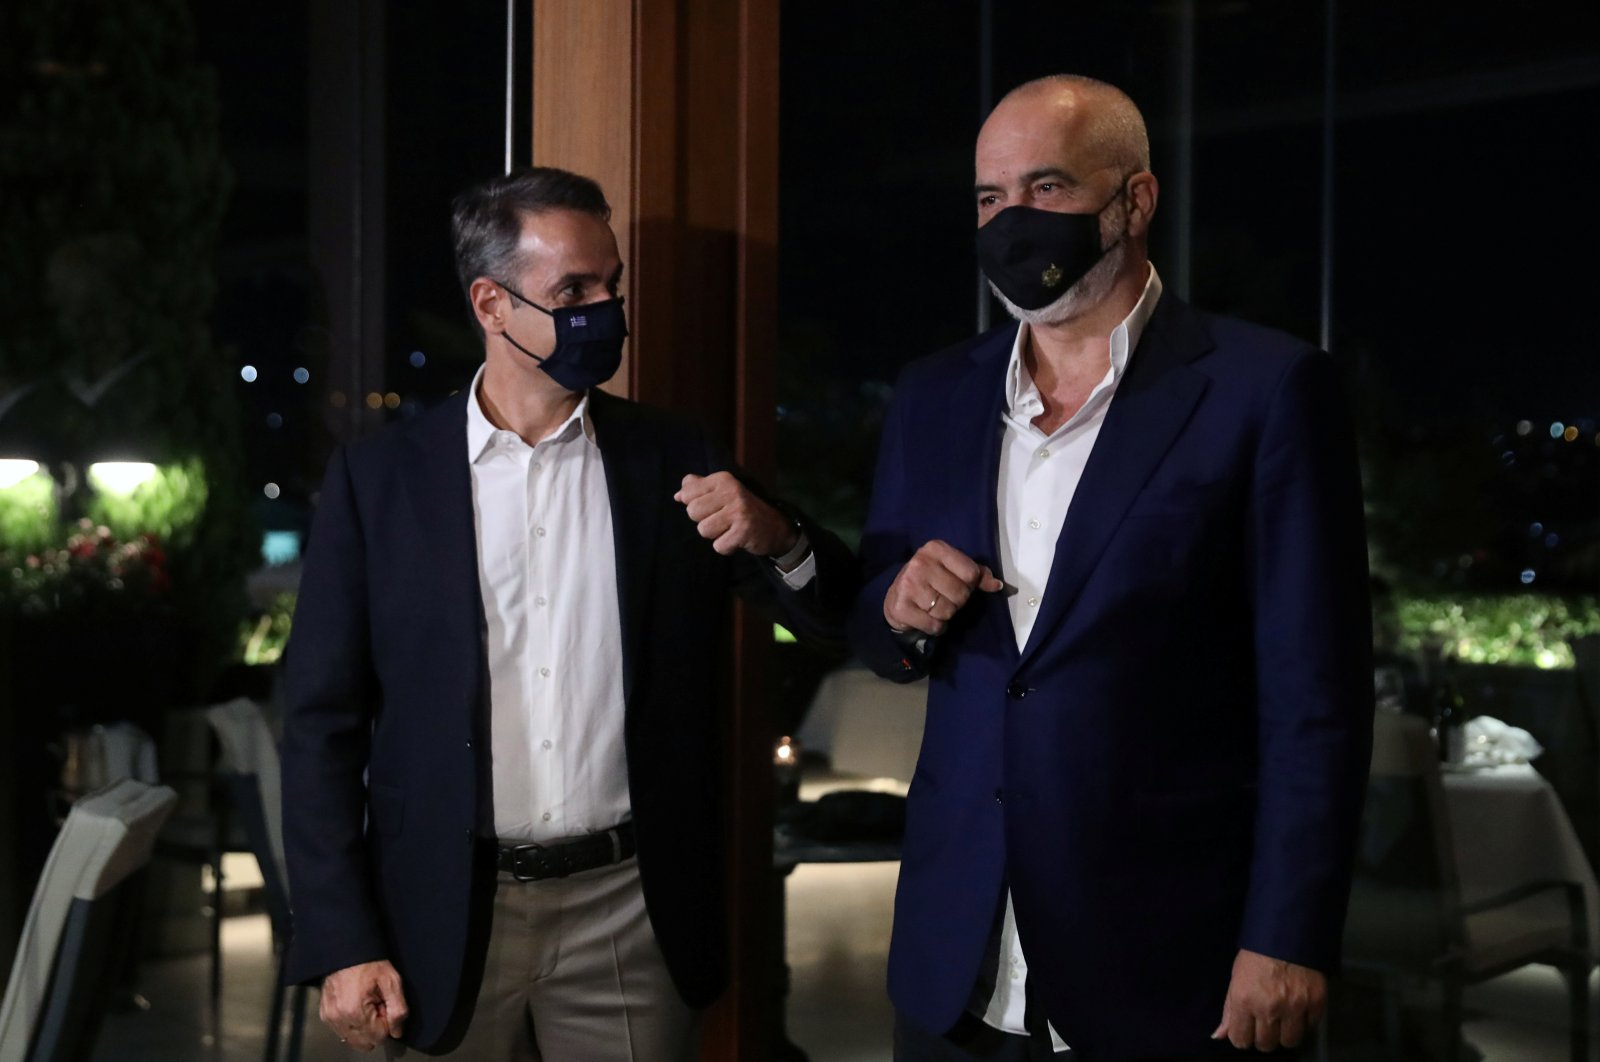 Greek Prime Minister Kyriakos Mitsotakis greets his Albanian counterpart Edi Rama before a working dinner in Athens, Greece, Sept. 15, 2020. (Reuters Photo)